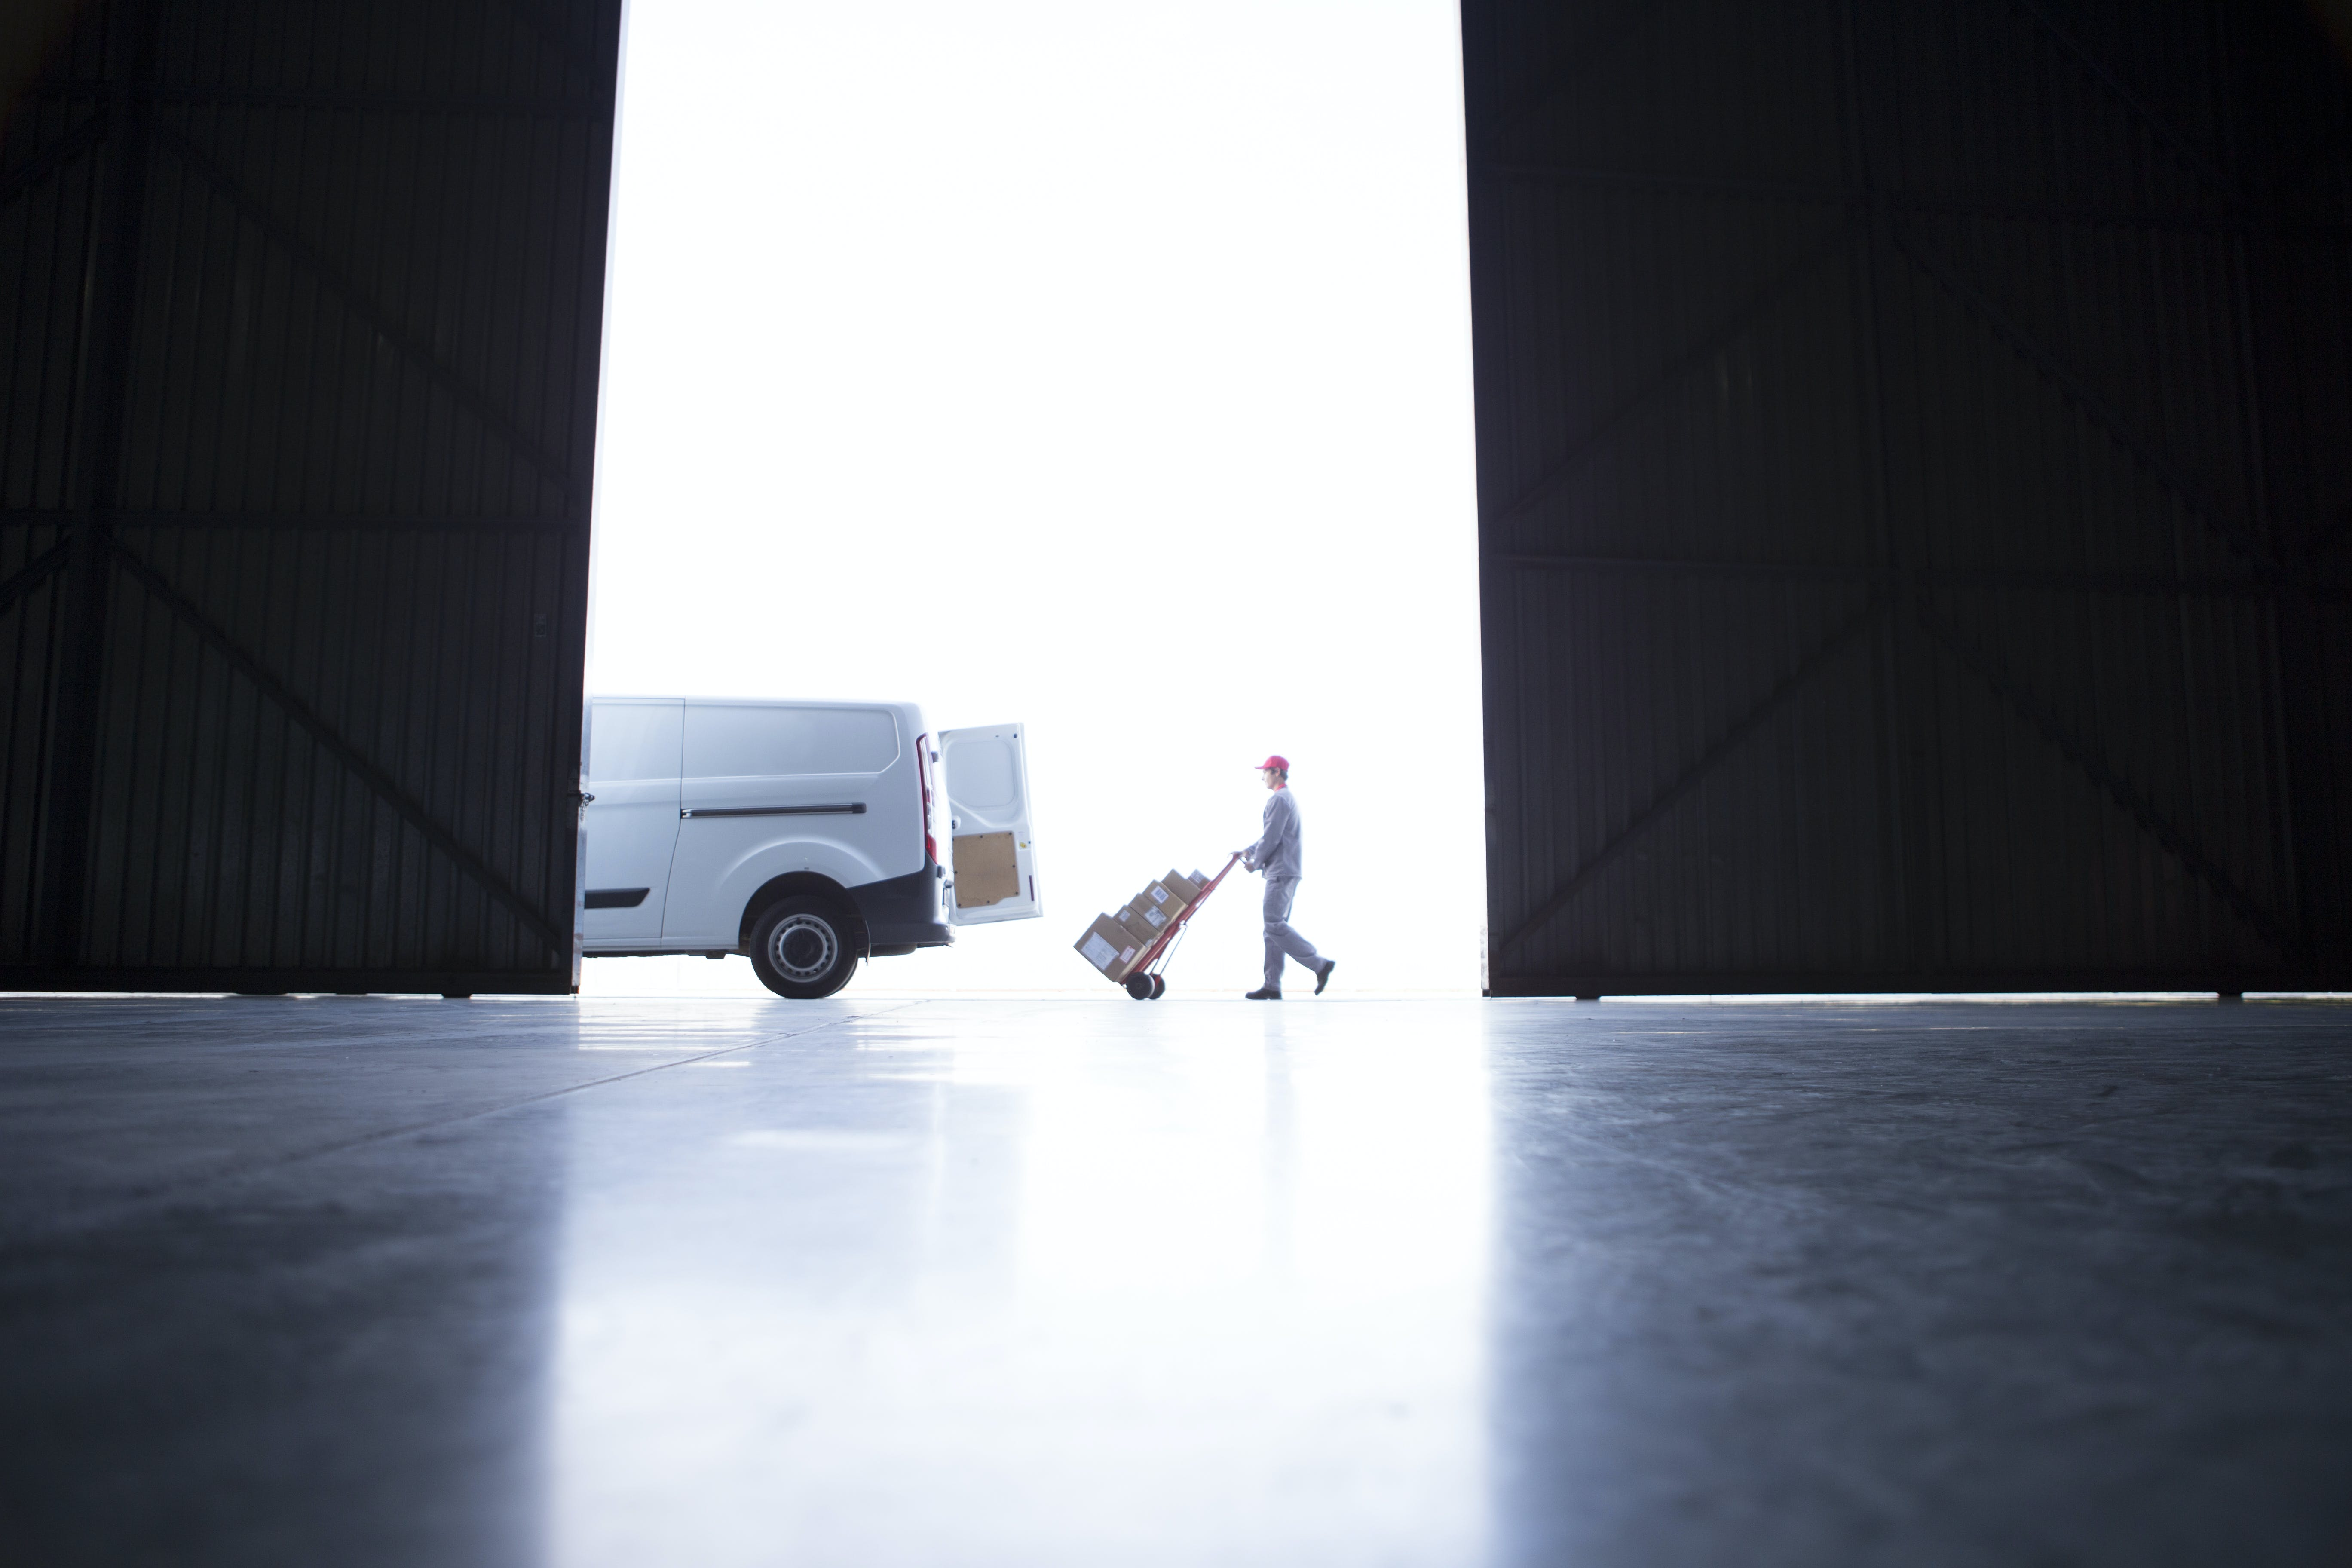 Last mile delivery: trends, insights and logistic planning